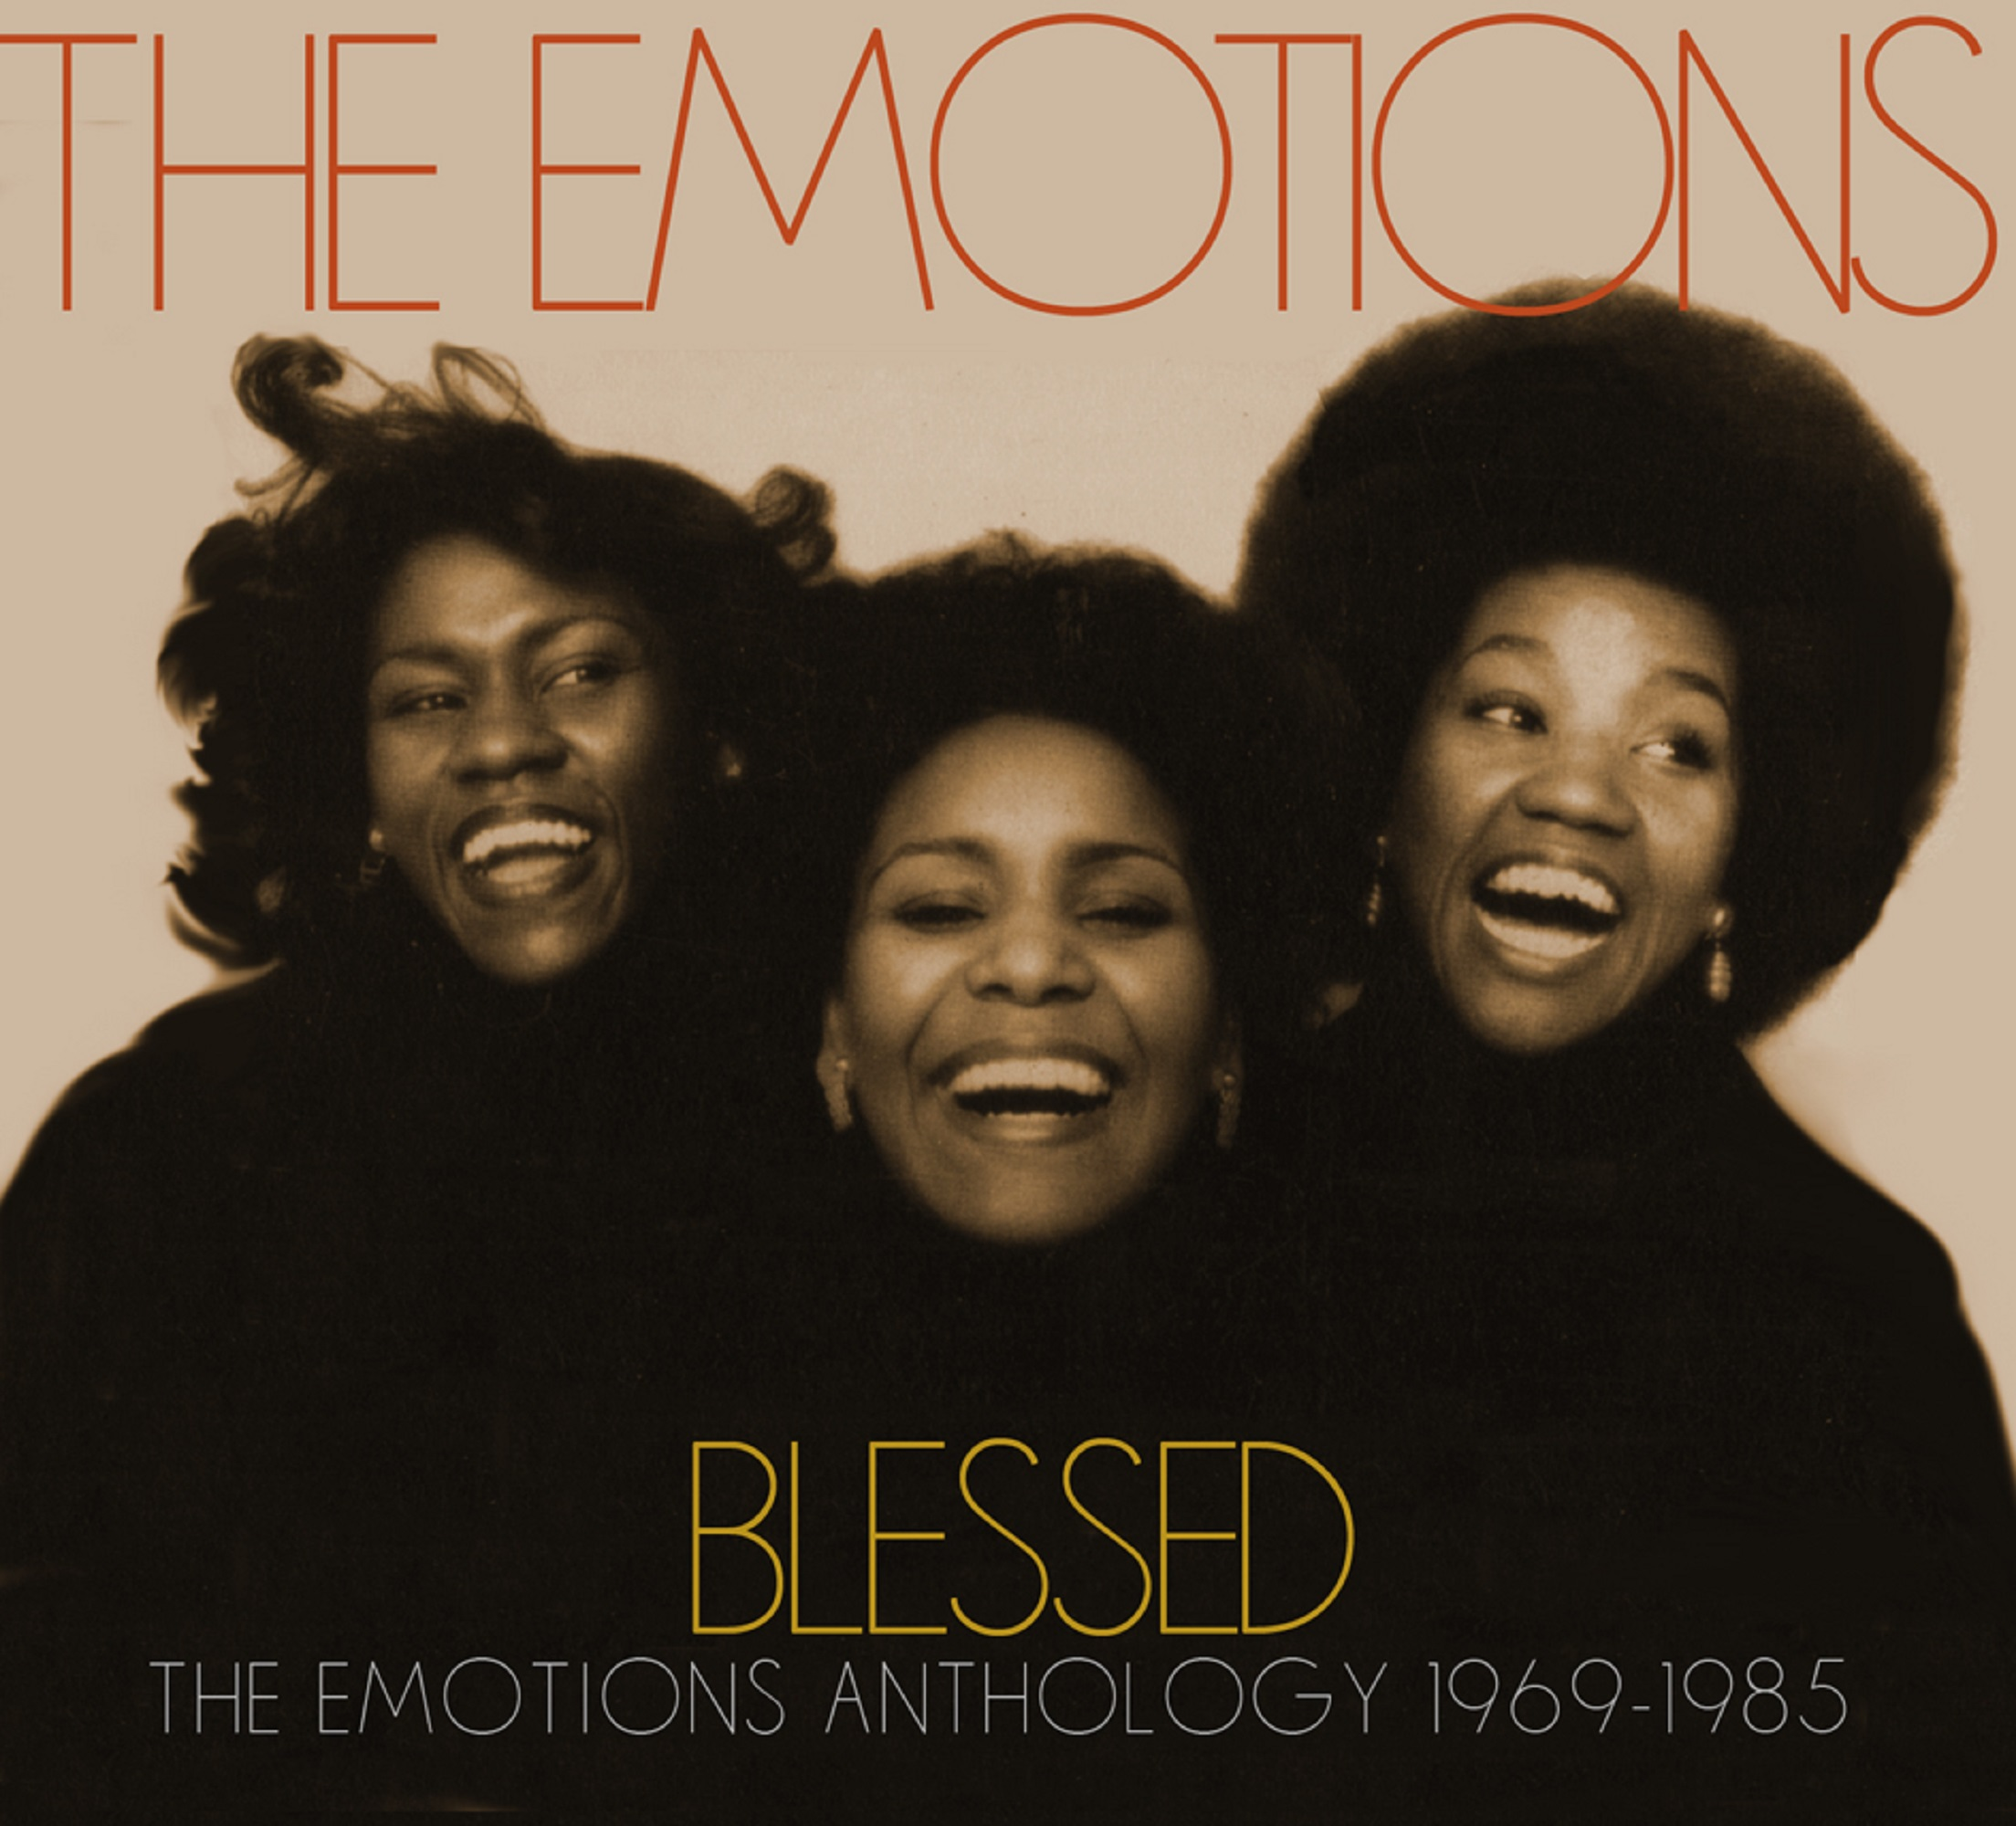 Emotions: Blessed: The Emotions Anthology 1969-1985